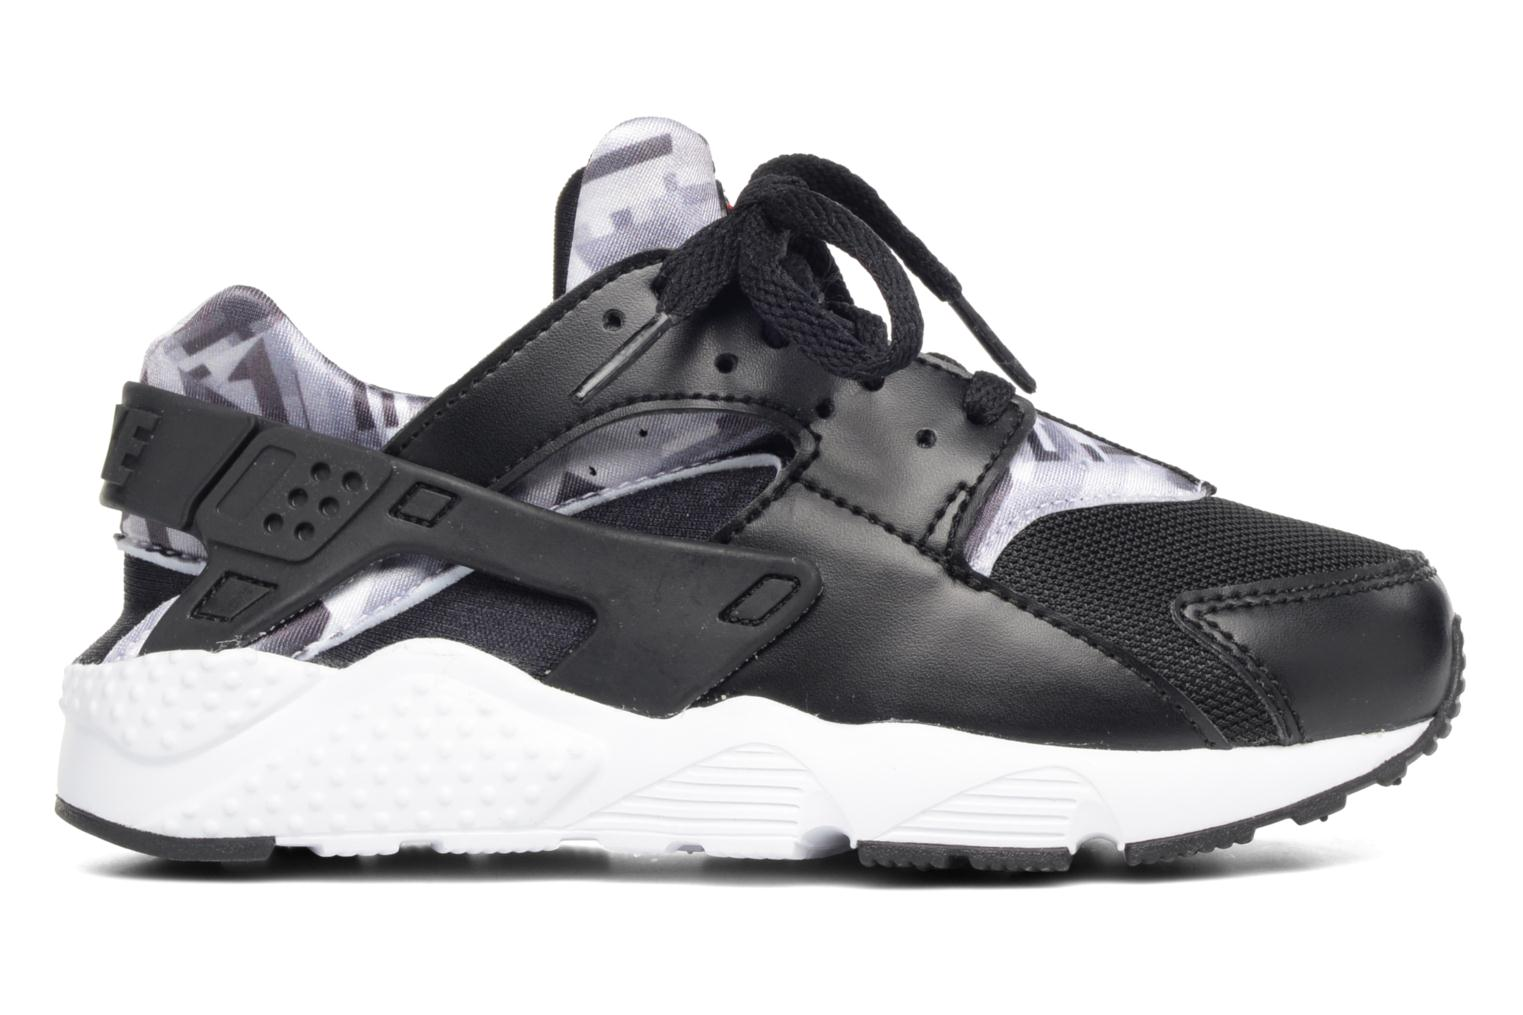 Nike Huarache Run Print (Ps) Black/Gym Red-Black-White